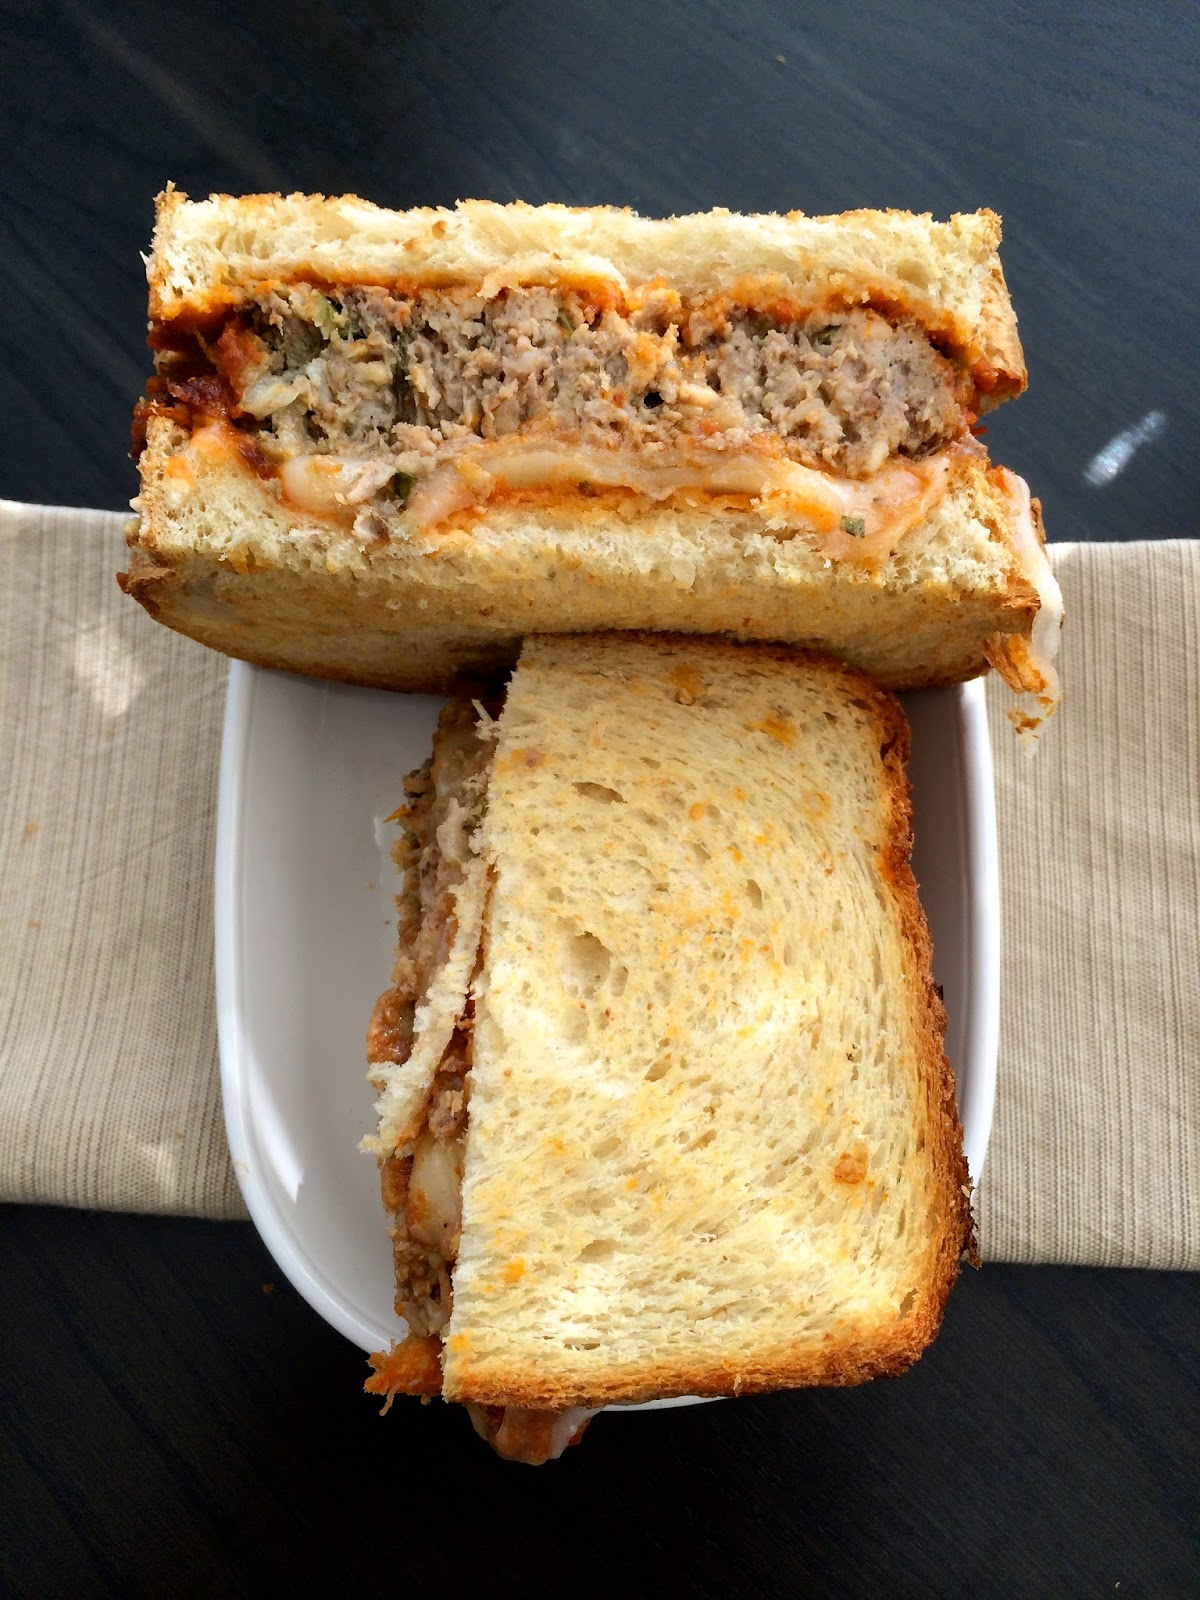 Rustic Meatloaf Sandwich